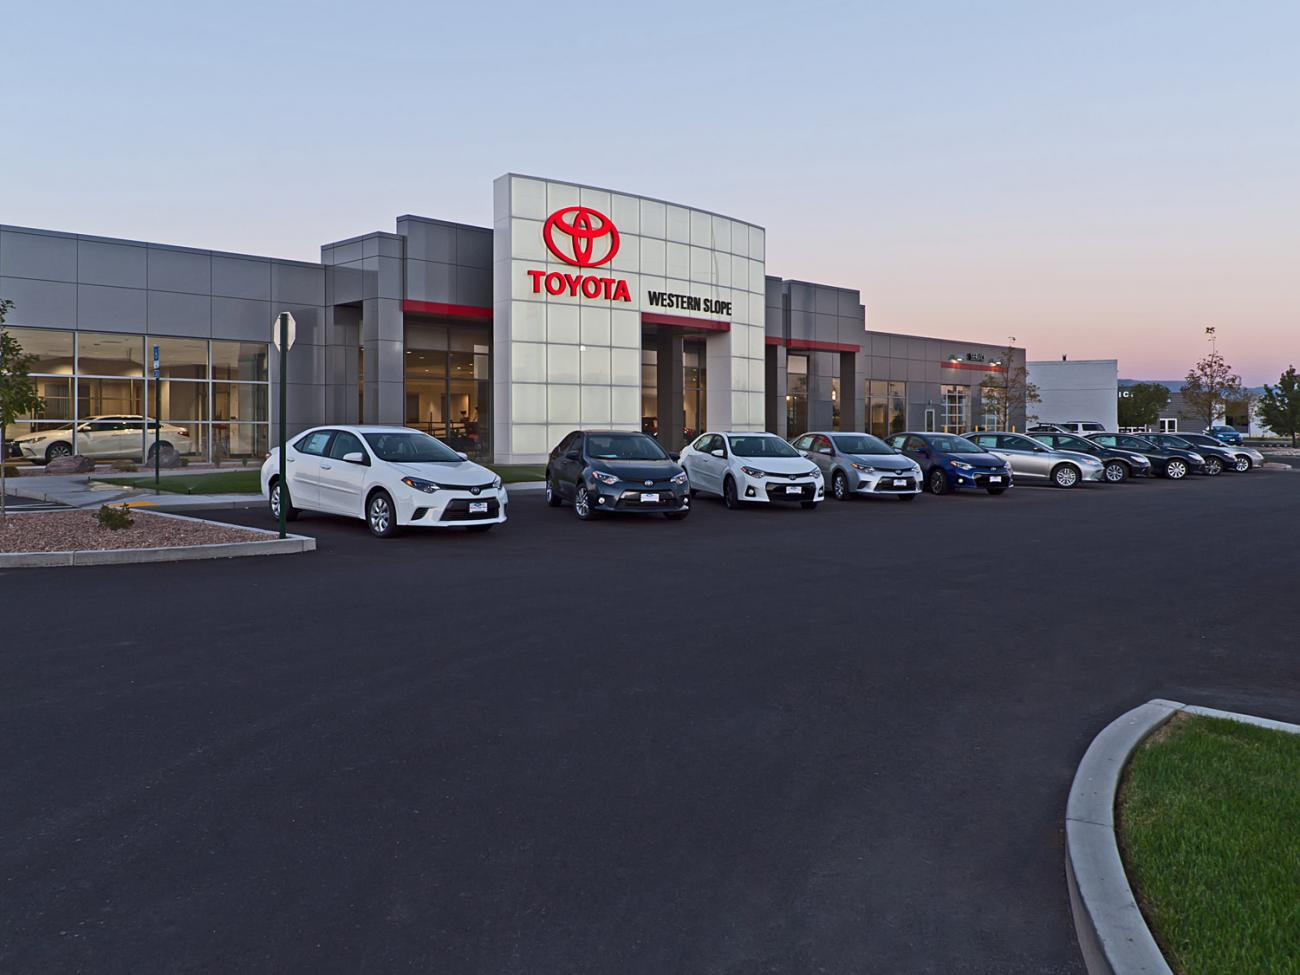 Western Slope Toyota front